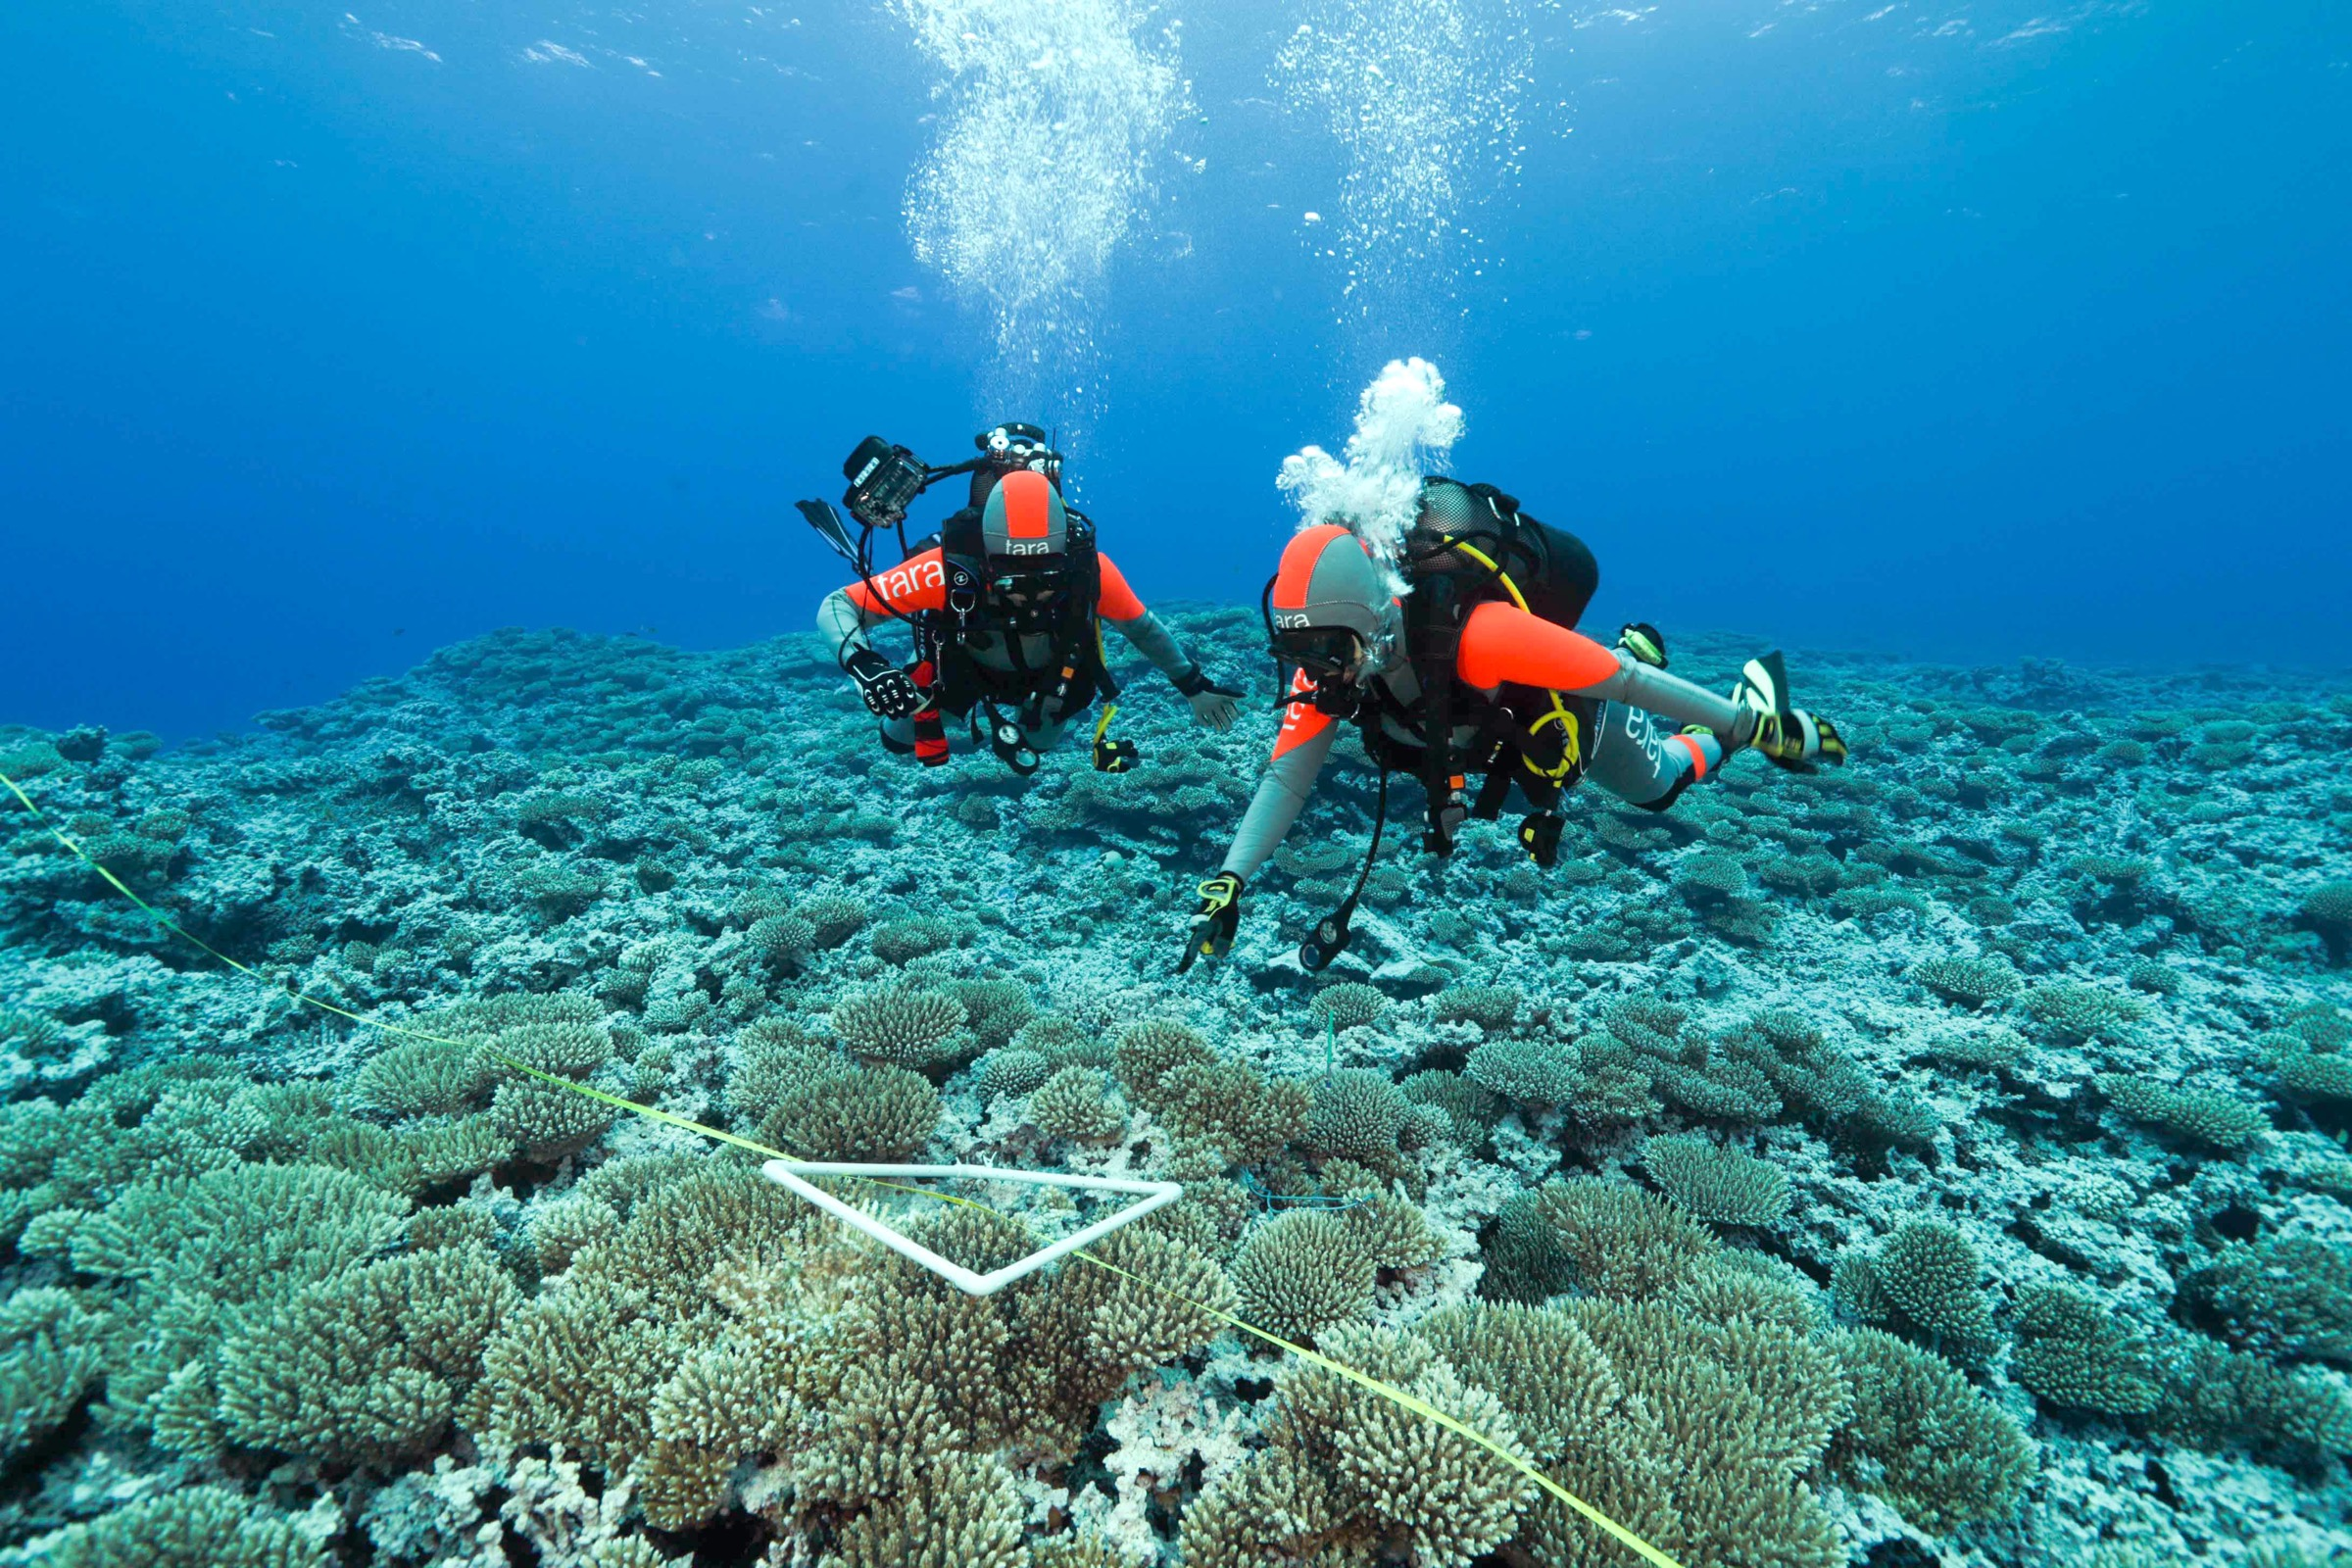 Divers conduct a coral survey off Ducie Island, an uninhabited atoll in the Pitcairn Islands. Photograph by Pete West / BioQuest Studios / TARA Expeditions Foundation